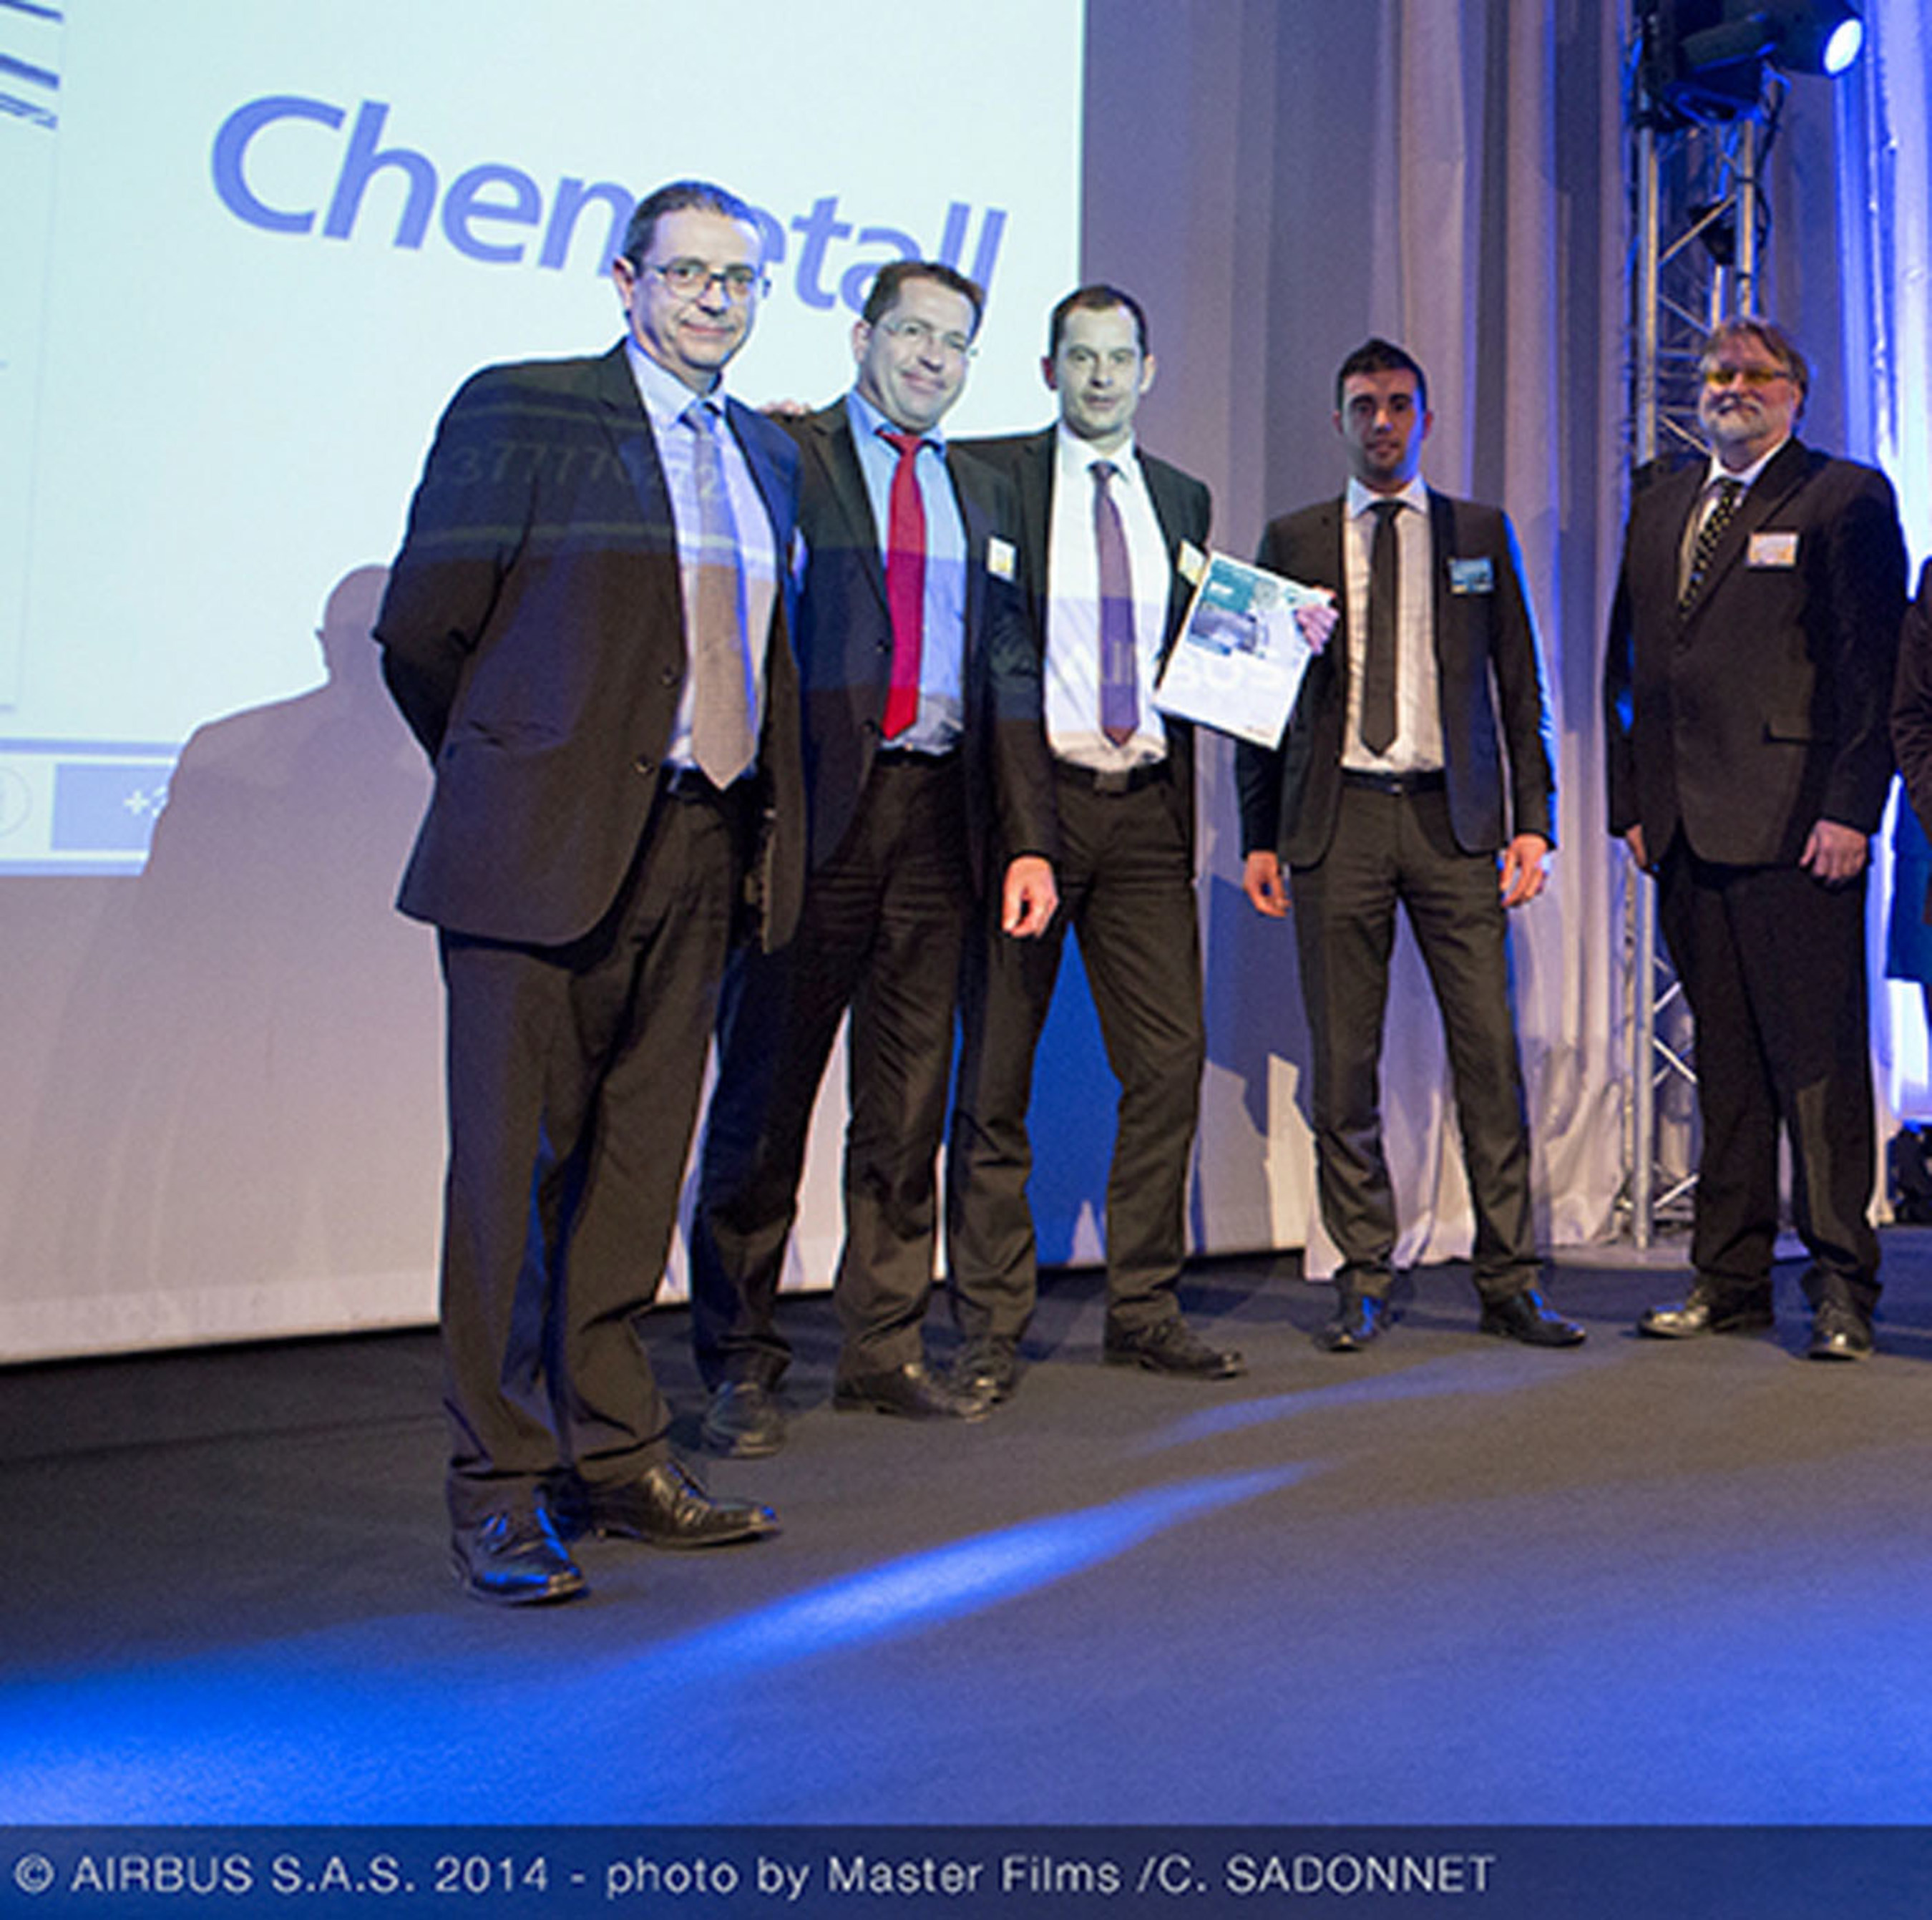 """The Chemetall representatives are proud to receive the """"accredited supplier"""" award as part of the Airbus SQIP program. Present at the awards ceremony were Ronald Hendriks, Quality Manager EMEA, Airbus SQIP Coordinator; Hendrik Becker, Global Segment Manager Aerospace; Christoph Hantschel, Global Product Manager Aircraft Sealants. (c) Airbus S.A.S, Mit freundlicher Genehmigung von Airbus"""